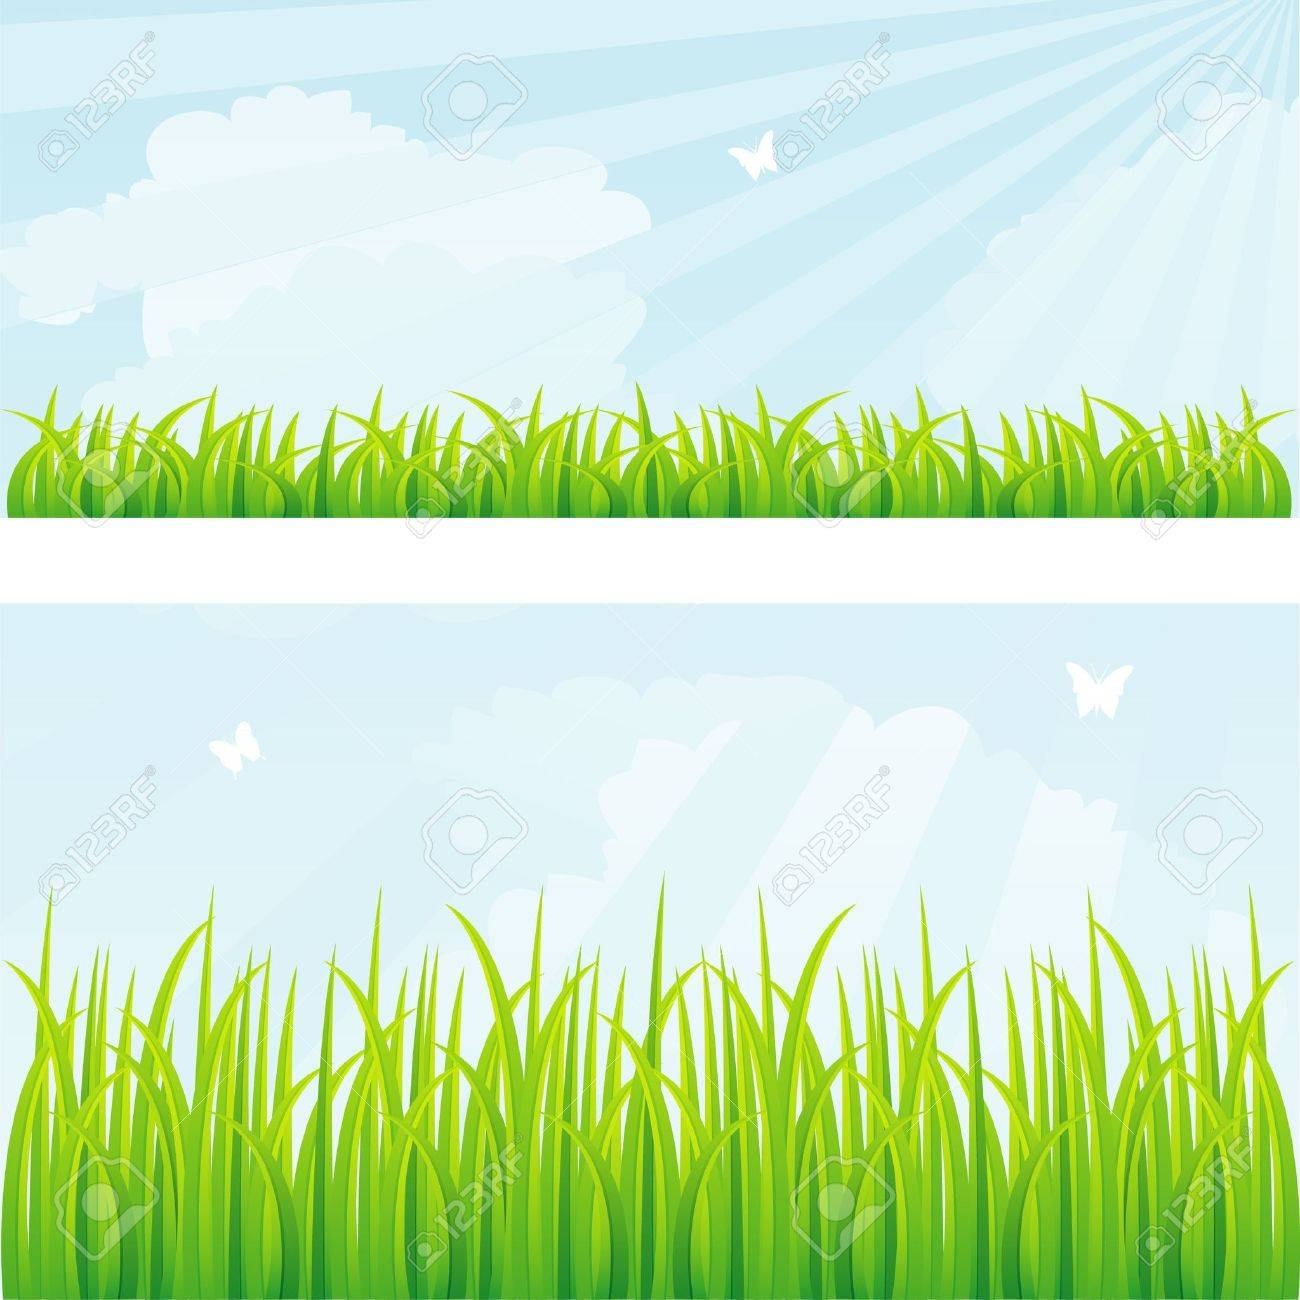 Vector illustration of Summer background with grass Stock Vector - 14863987